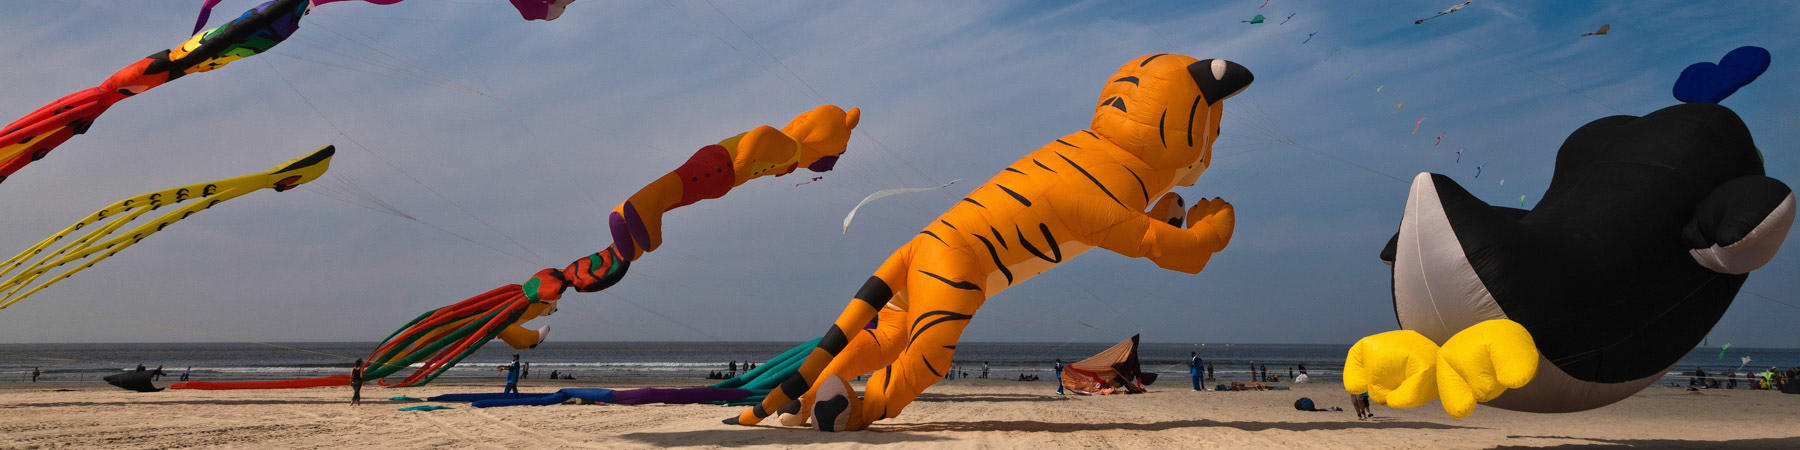 International Meeting of Kite in Berck-sur-Mer. - Photo Plisson